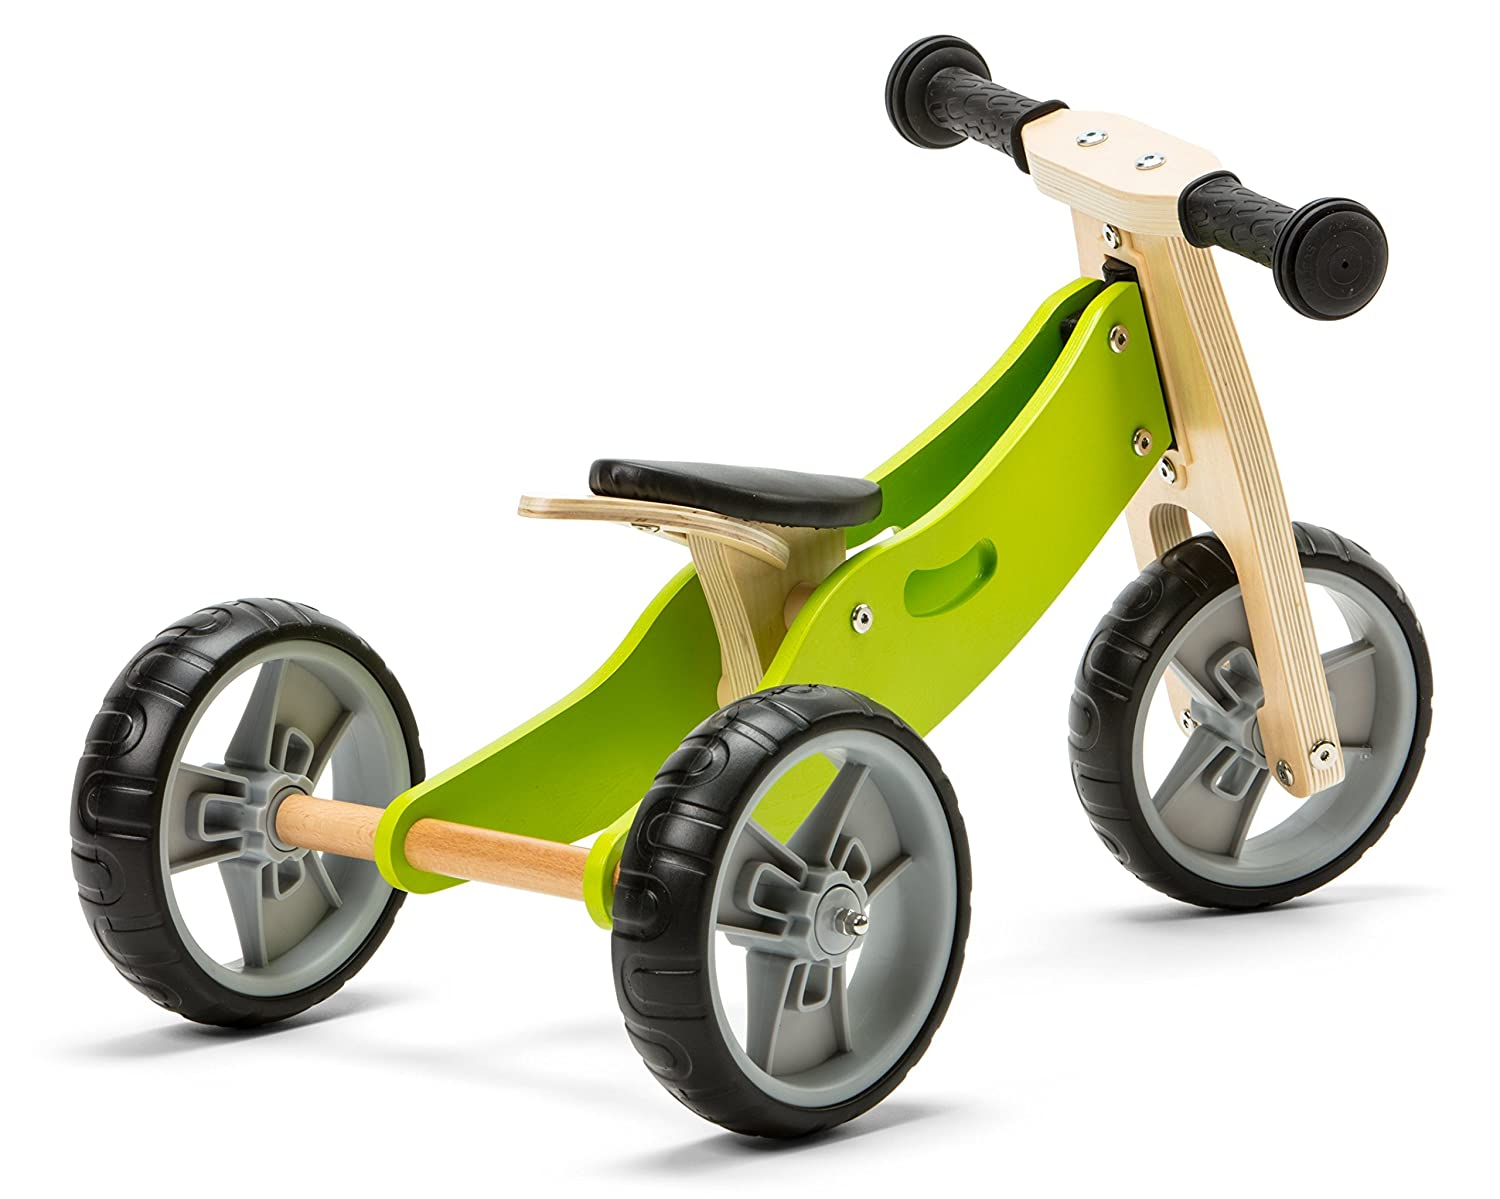 Toy for a child a wooden ECO toy motorcycle for learning and riding,for a Gift Holzspielzeug